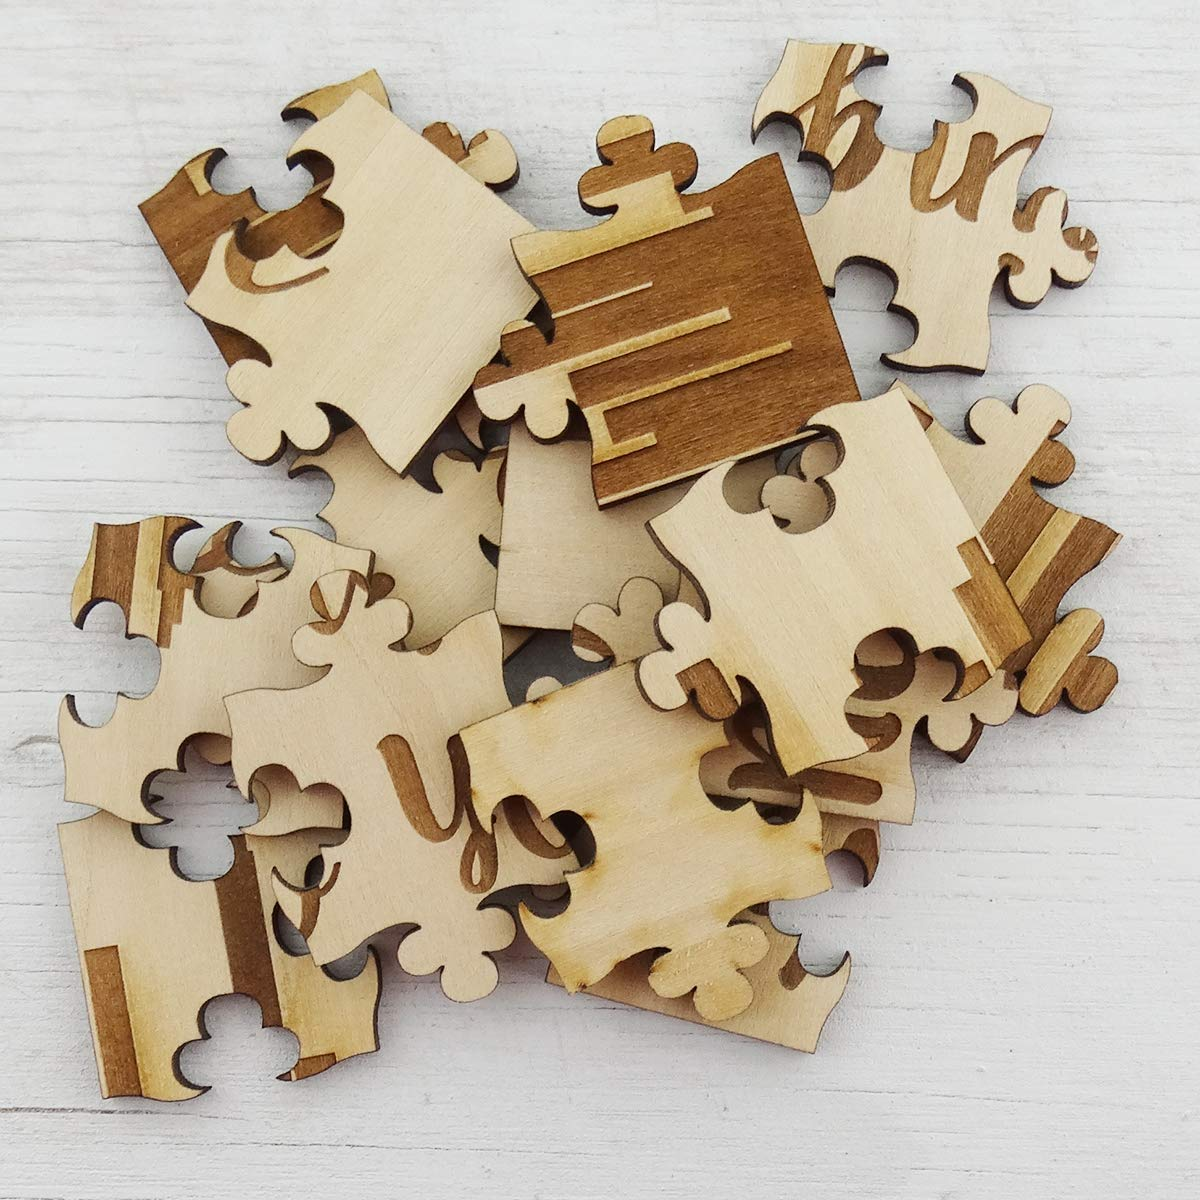 Were Going To New York Surprise Vacation NY Trip Reveal FashionJunkie4Life WD01BZ 15 Piece Basswood Jigsaw Puzzle